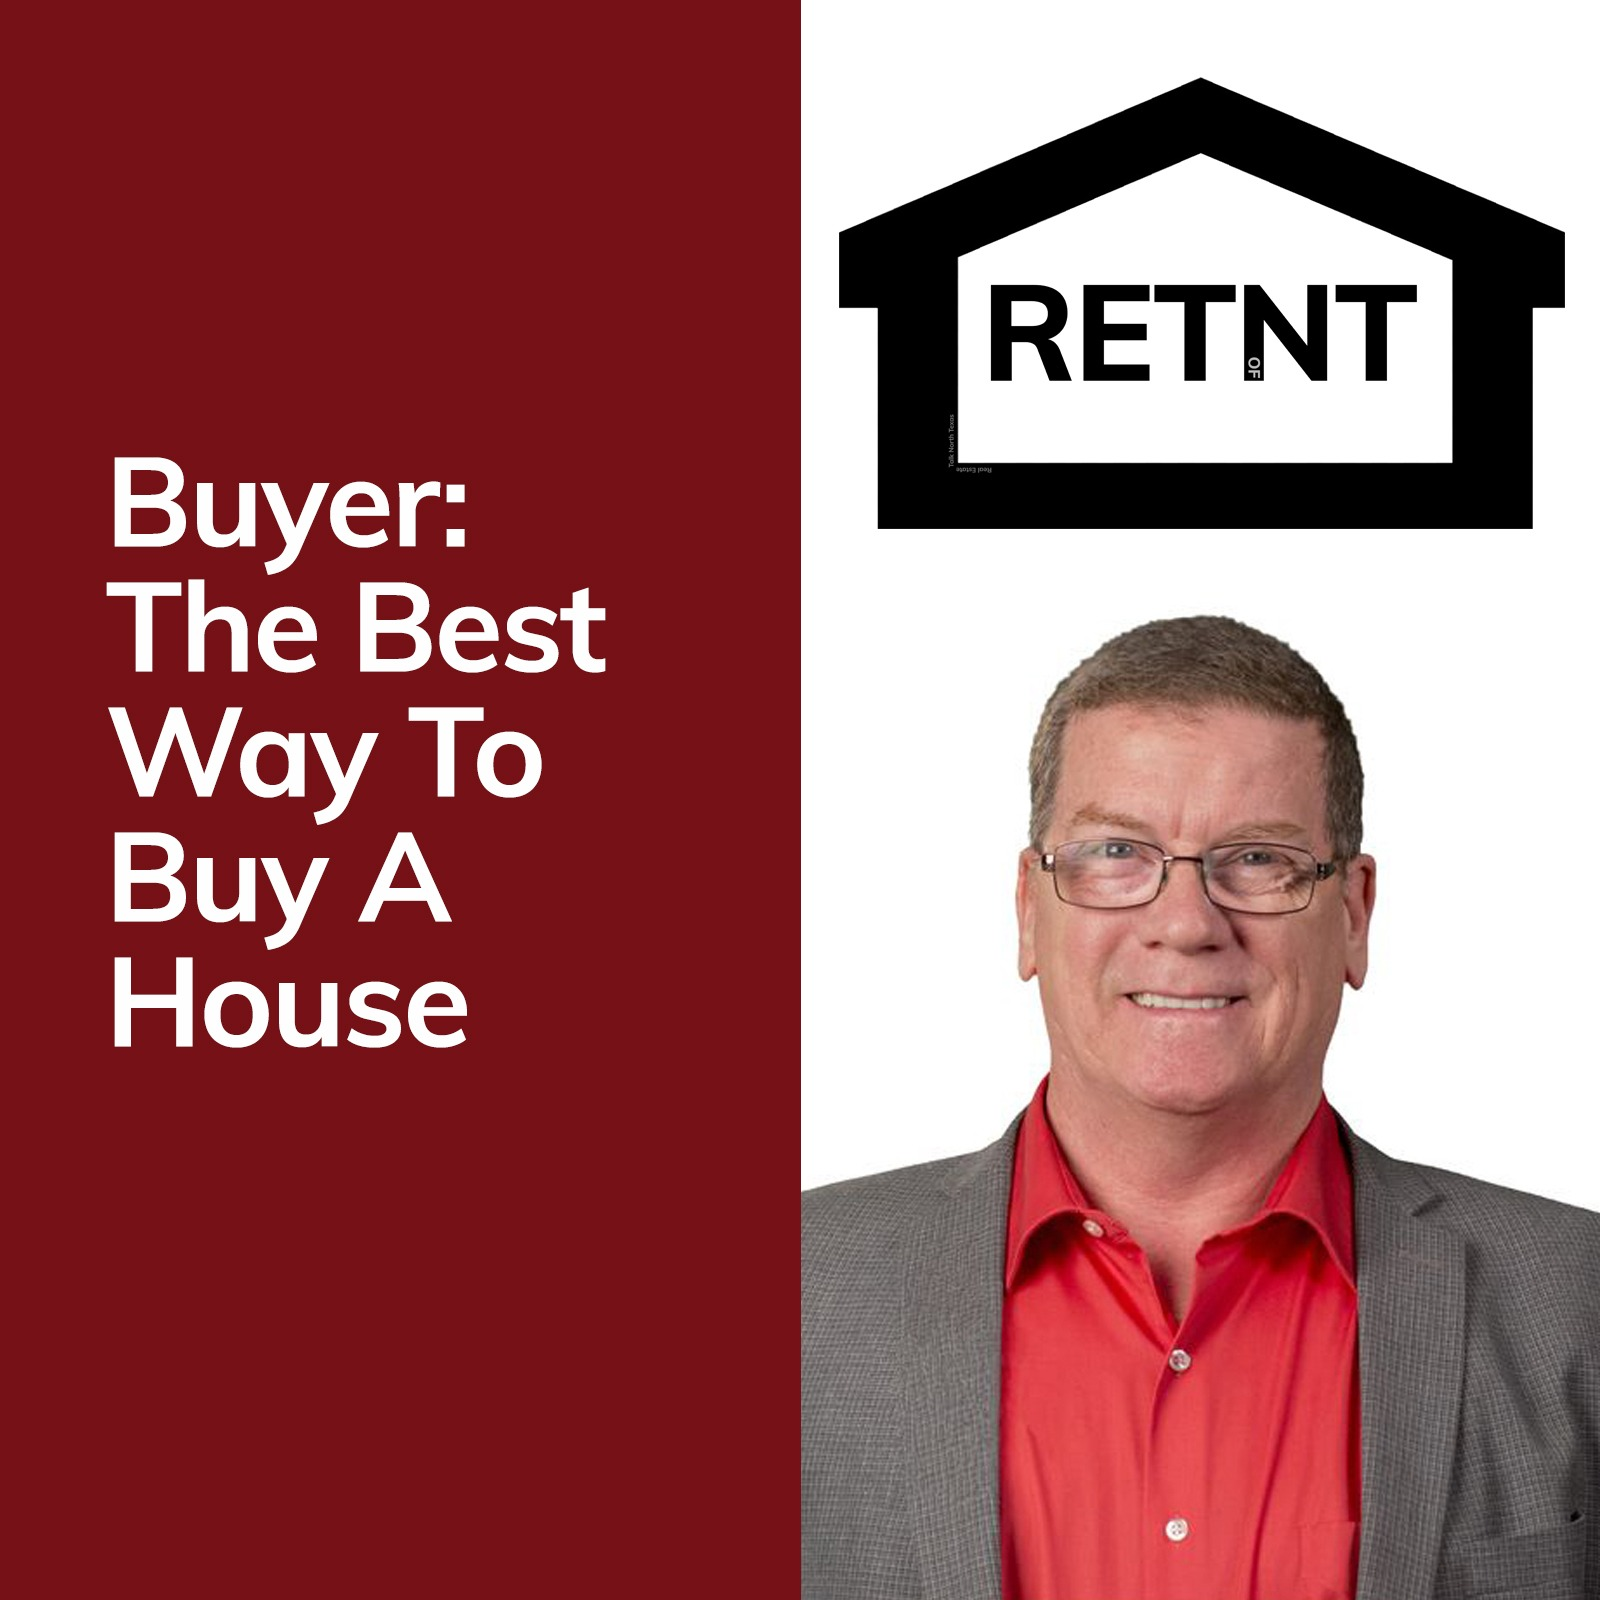 The Best Way to Buy A House